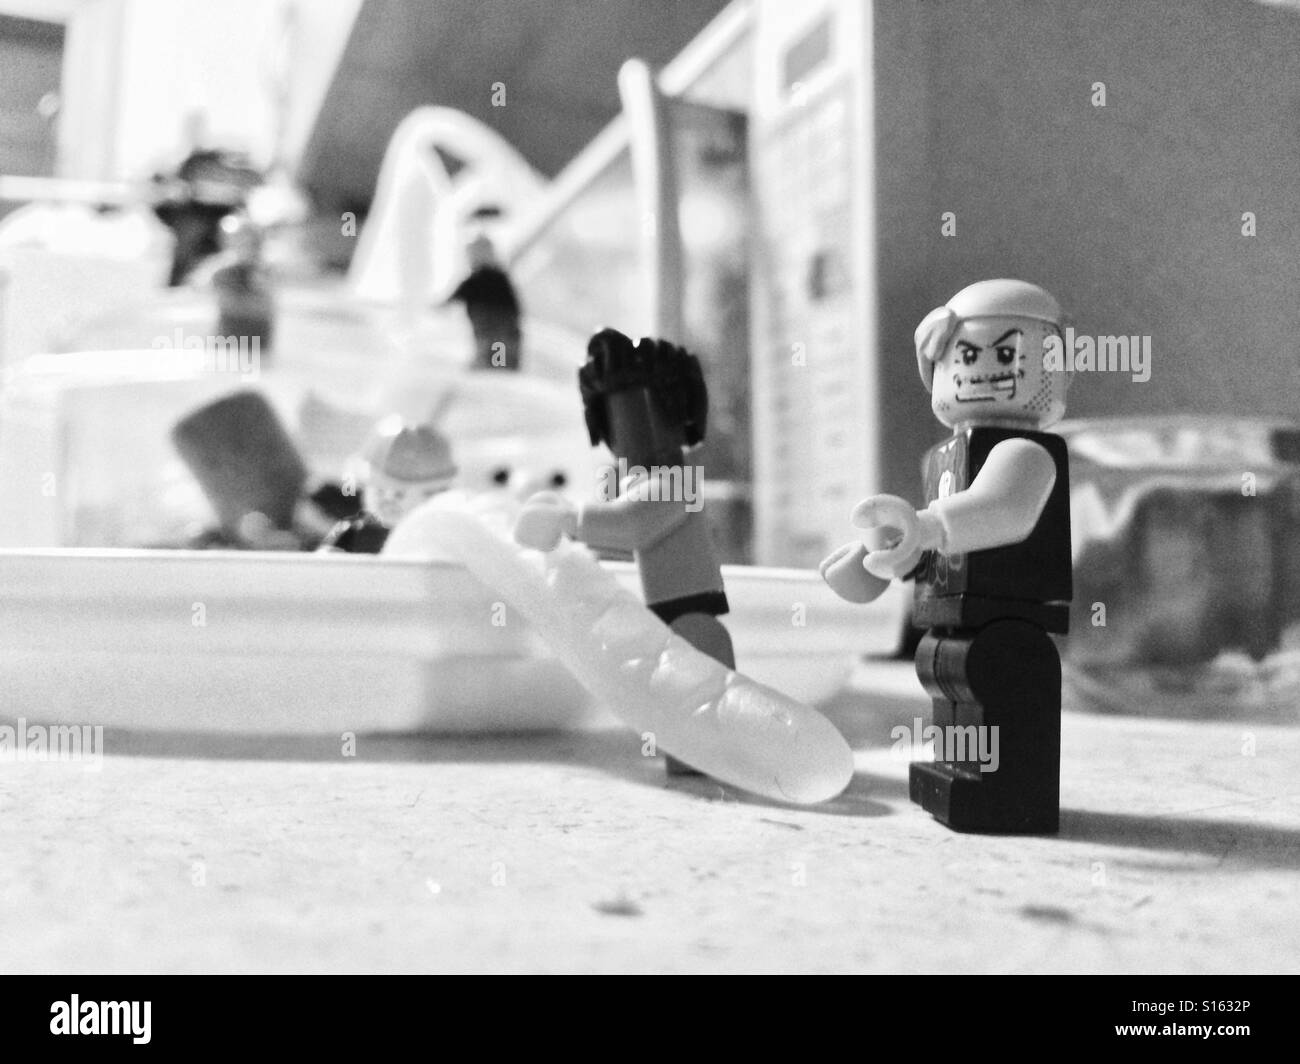 The Lego story - the after Halloween sweet theft (2) - Stock Image